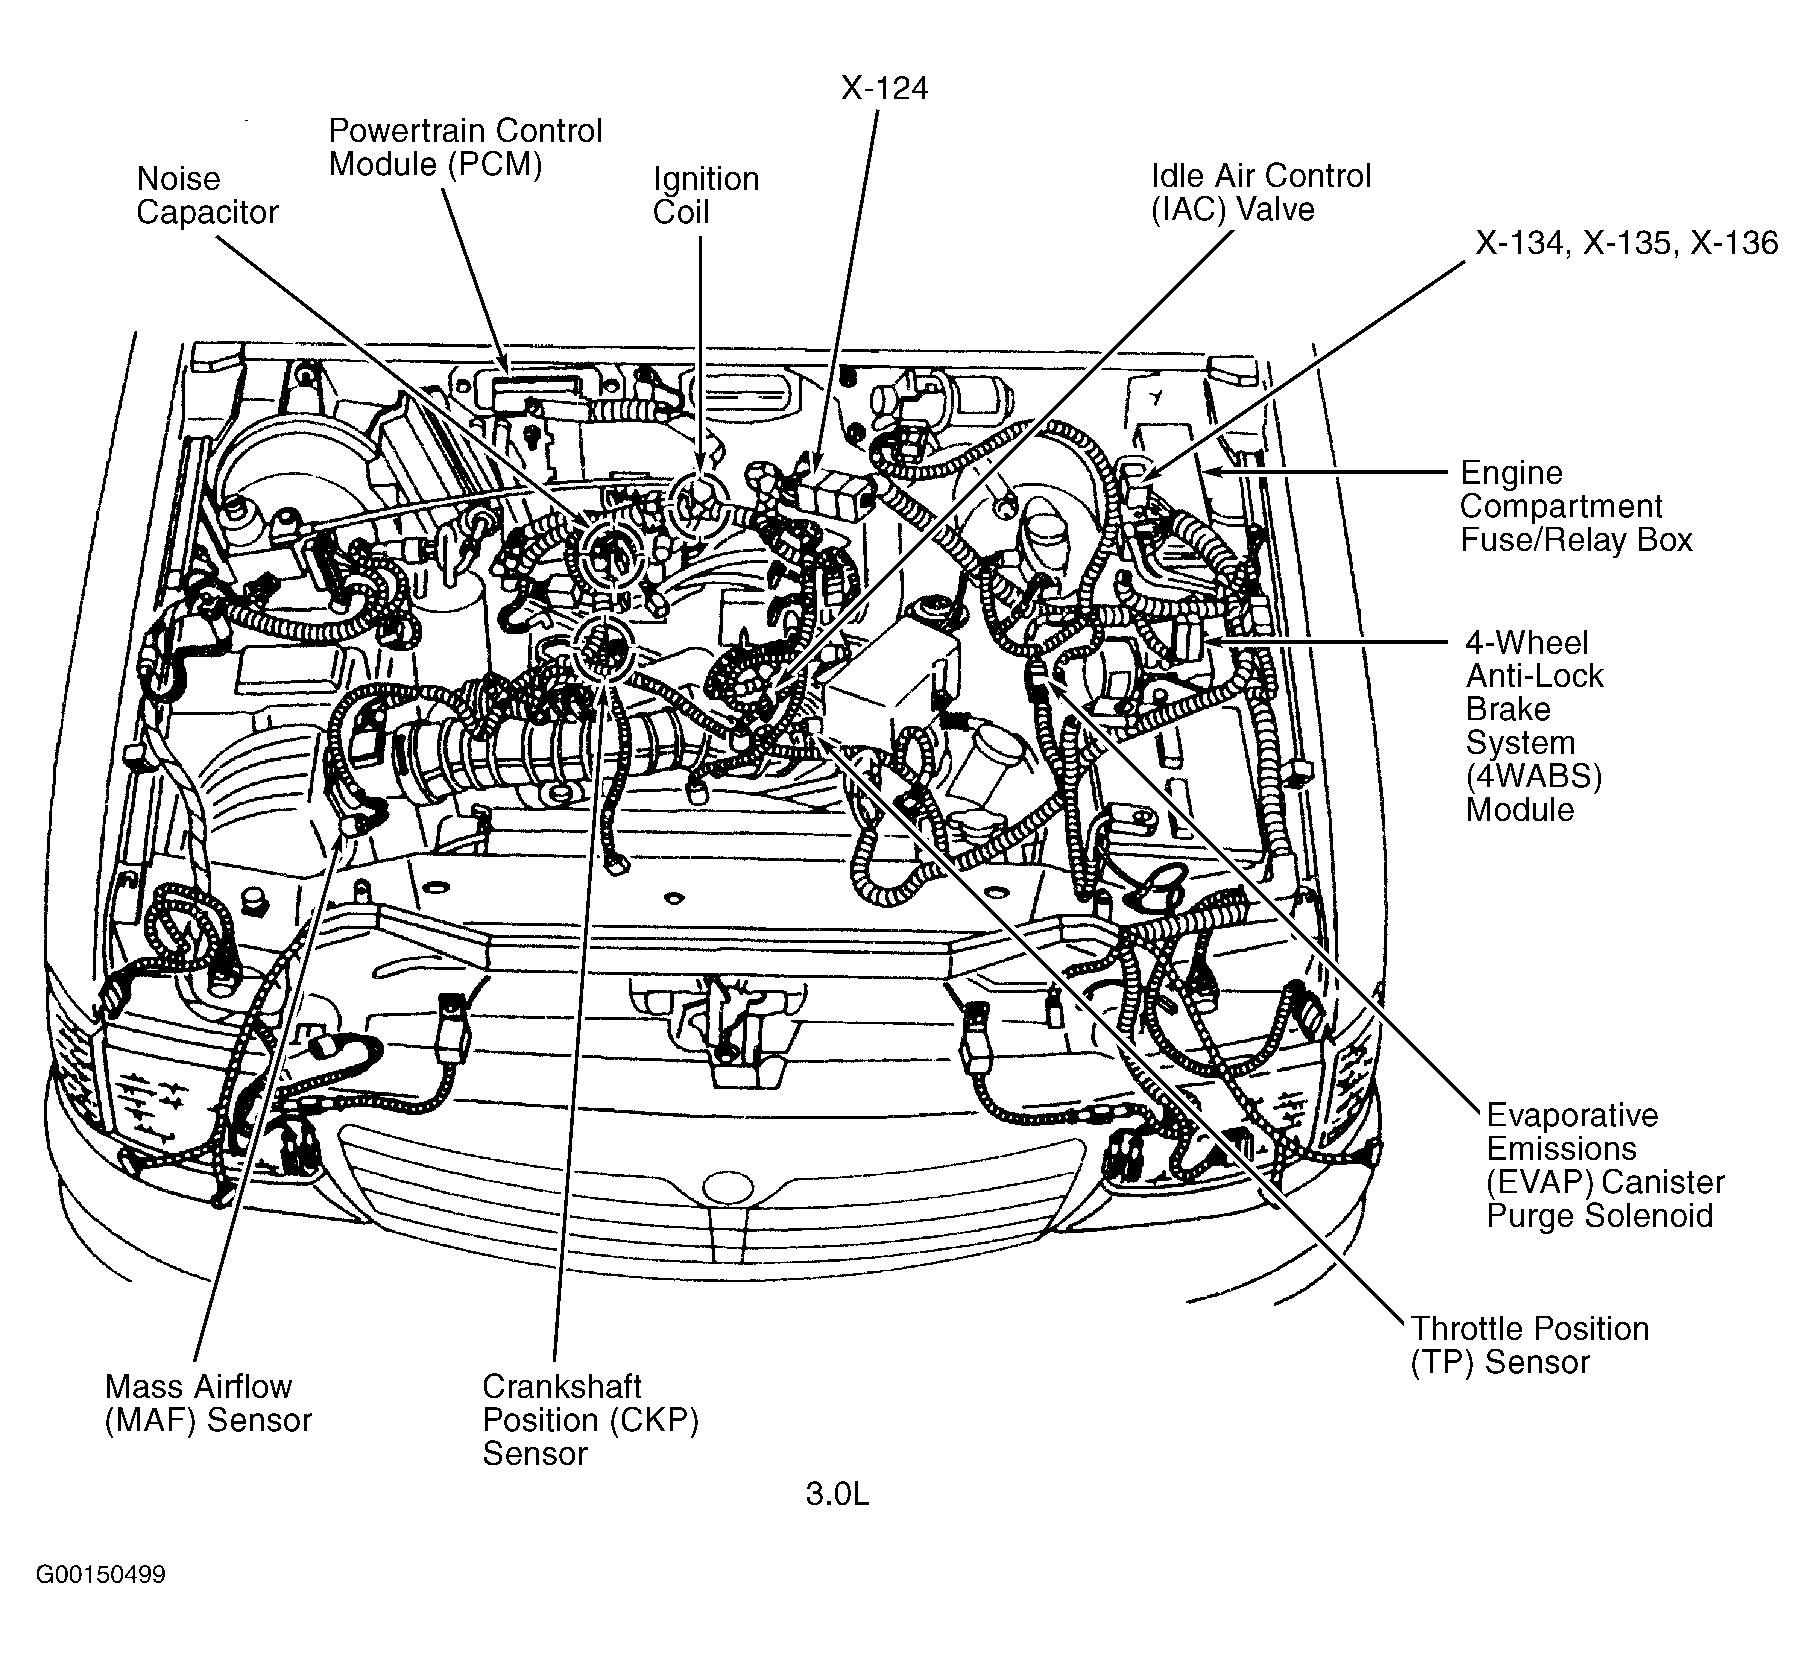 Toyota Celica Engine Diagram toyota 7afe Engine Diagram Wiring Diagram Used Of Toyota Celica Engine Diagram